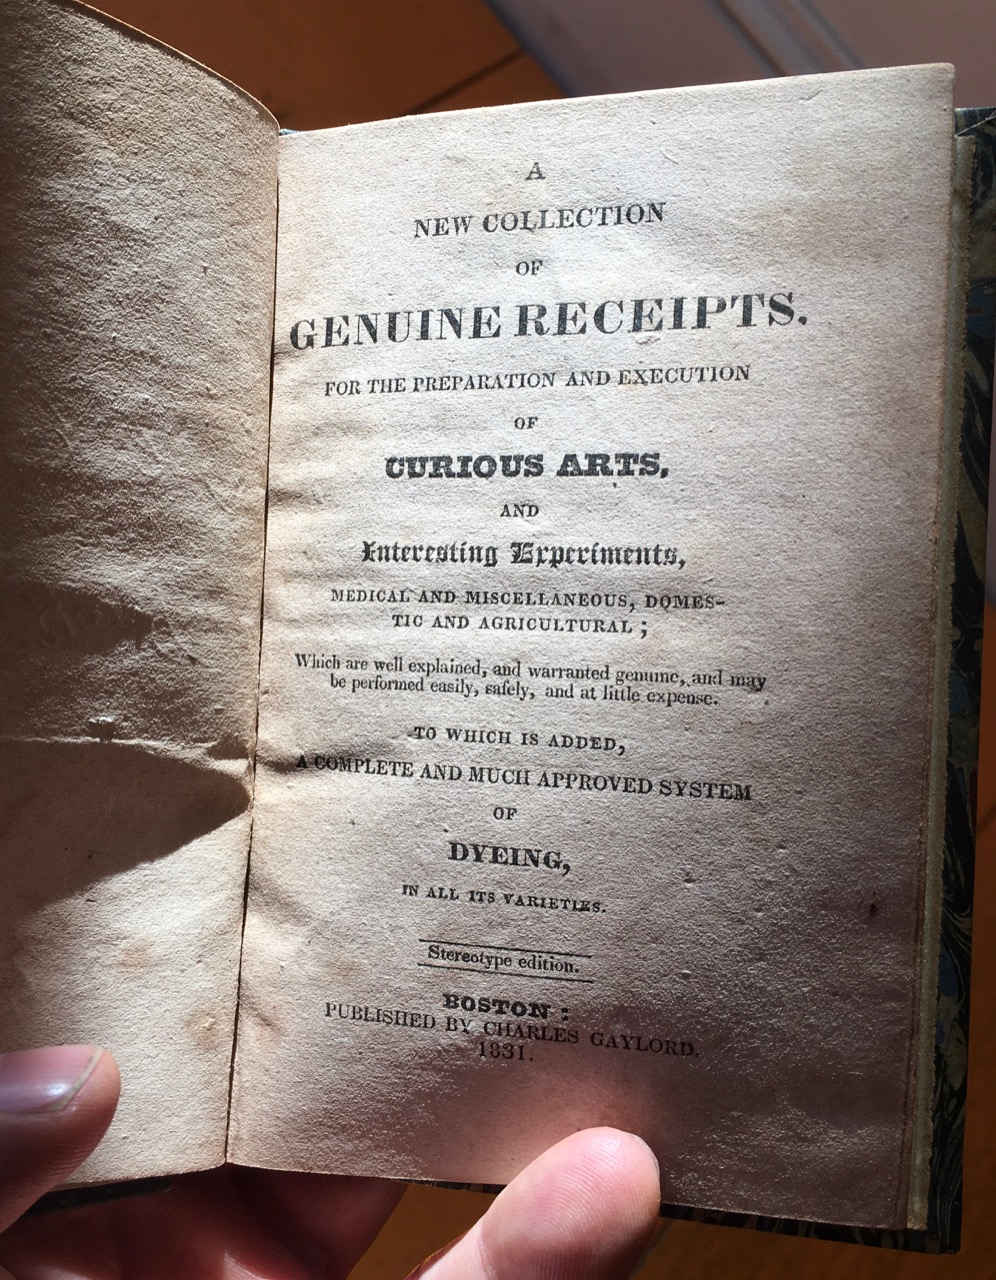 A New Collection of Genuine Receipts, for the Preparation and Execution of Curious Arts, and Interesting Experiments, Medical and Miscellaneous, Domestic and Agricultural. Which are well explained, and warranted genuine, and may be performed easily, safely, and at little expense. To which is added, a complete and much improved system of dyeing, in all its varieties. Stereotype edition. Rufus Porter, compiler.